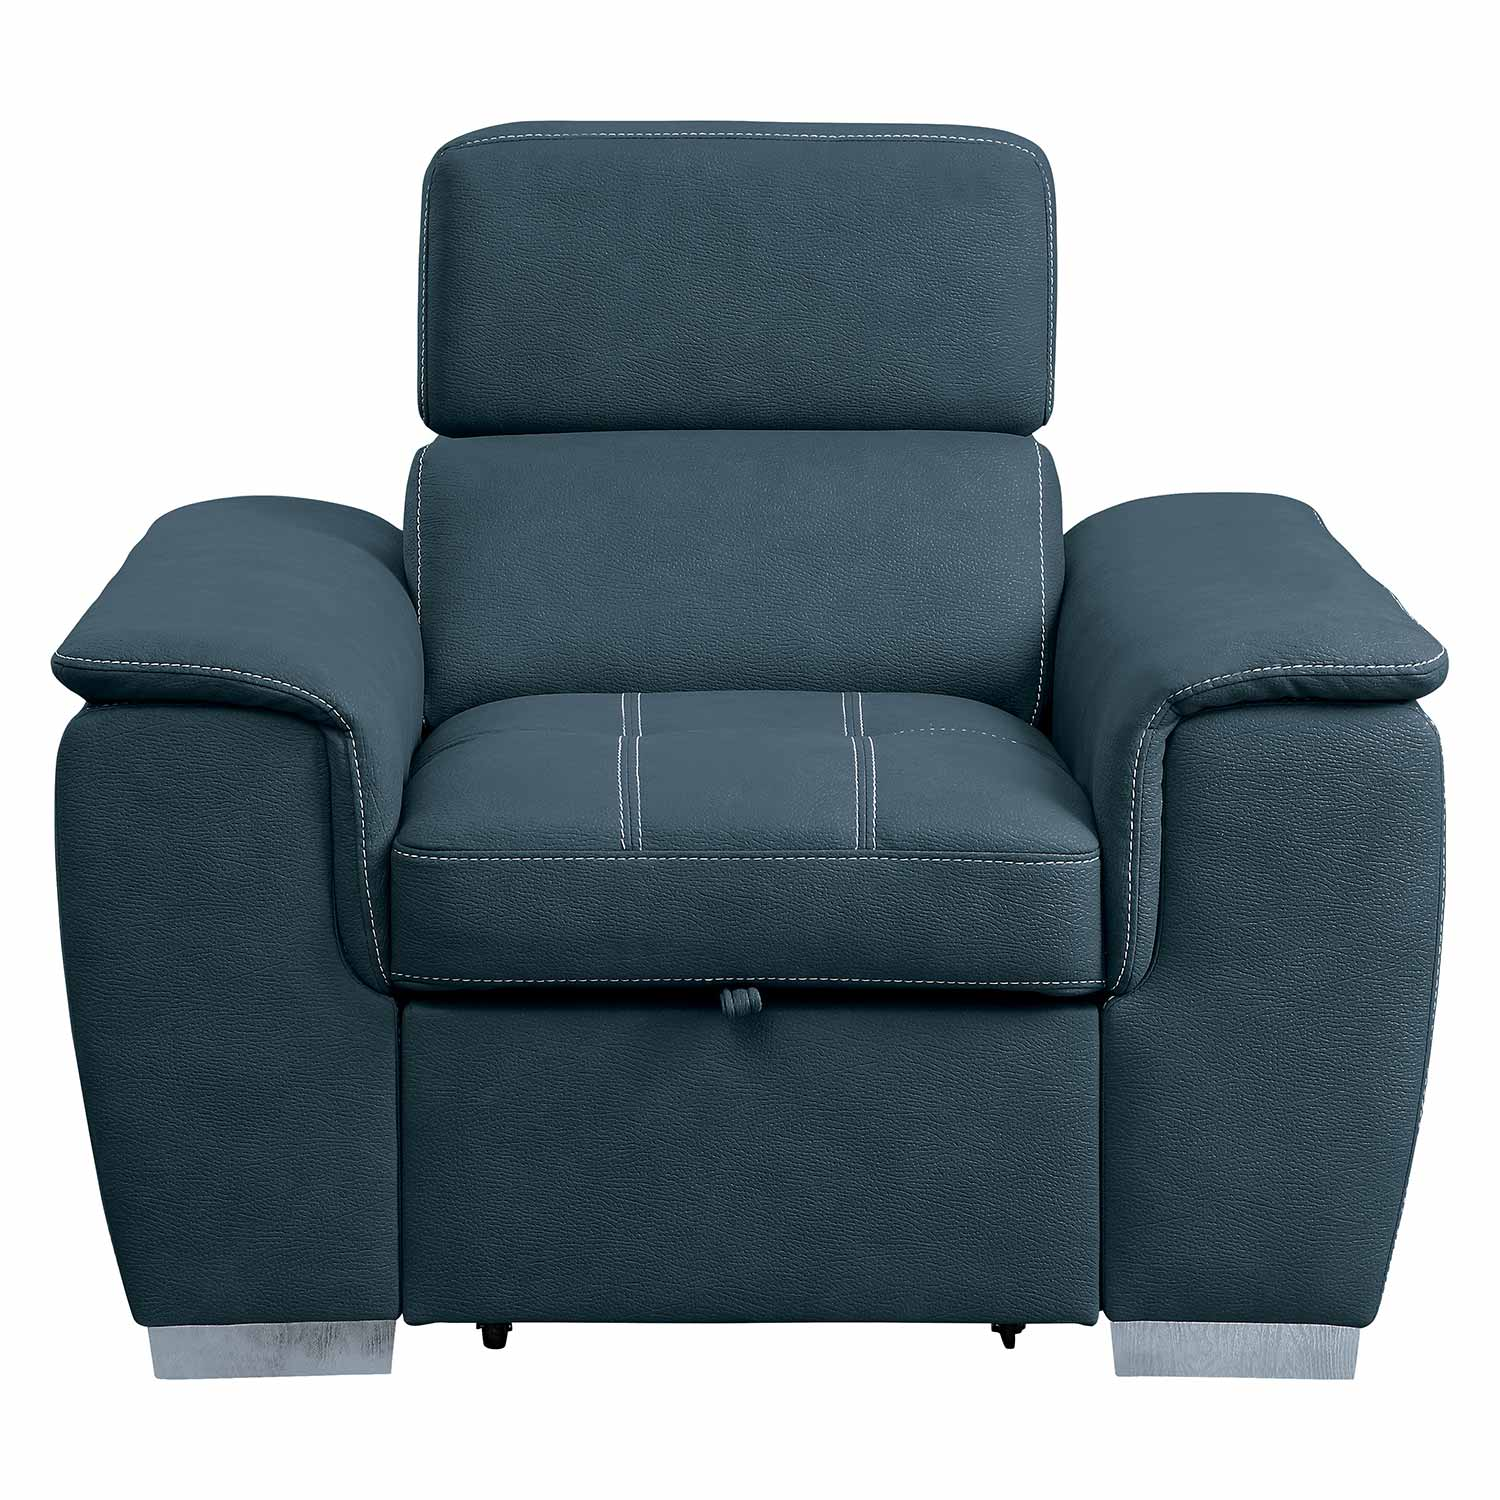 Homelegance Ferriday Sectional with Pull-out Bed and Hidden Storage Set - Blue